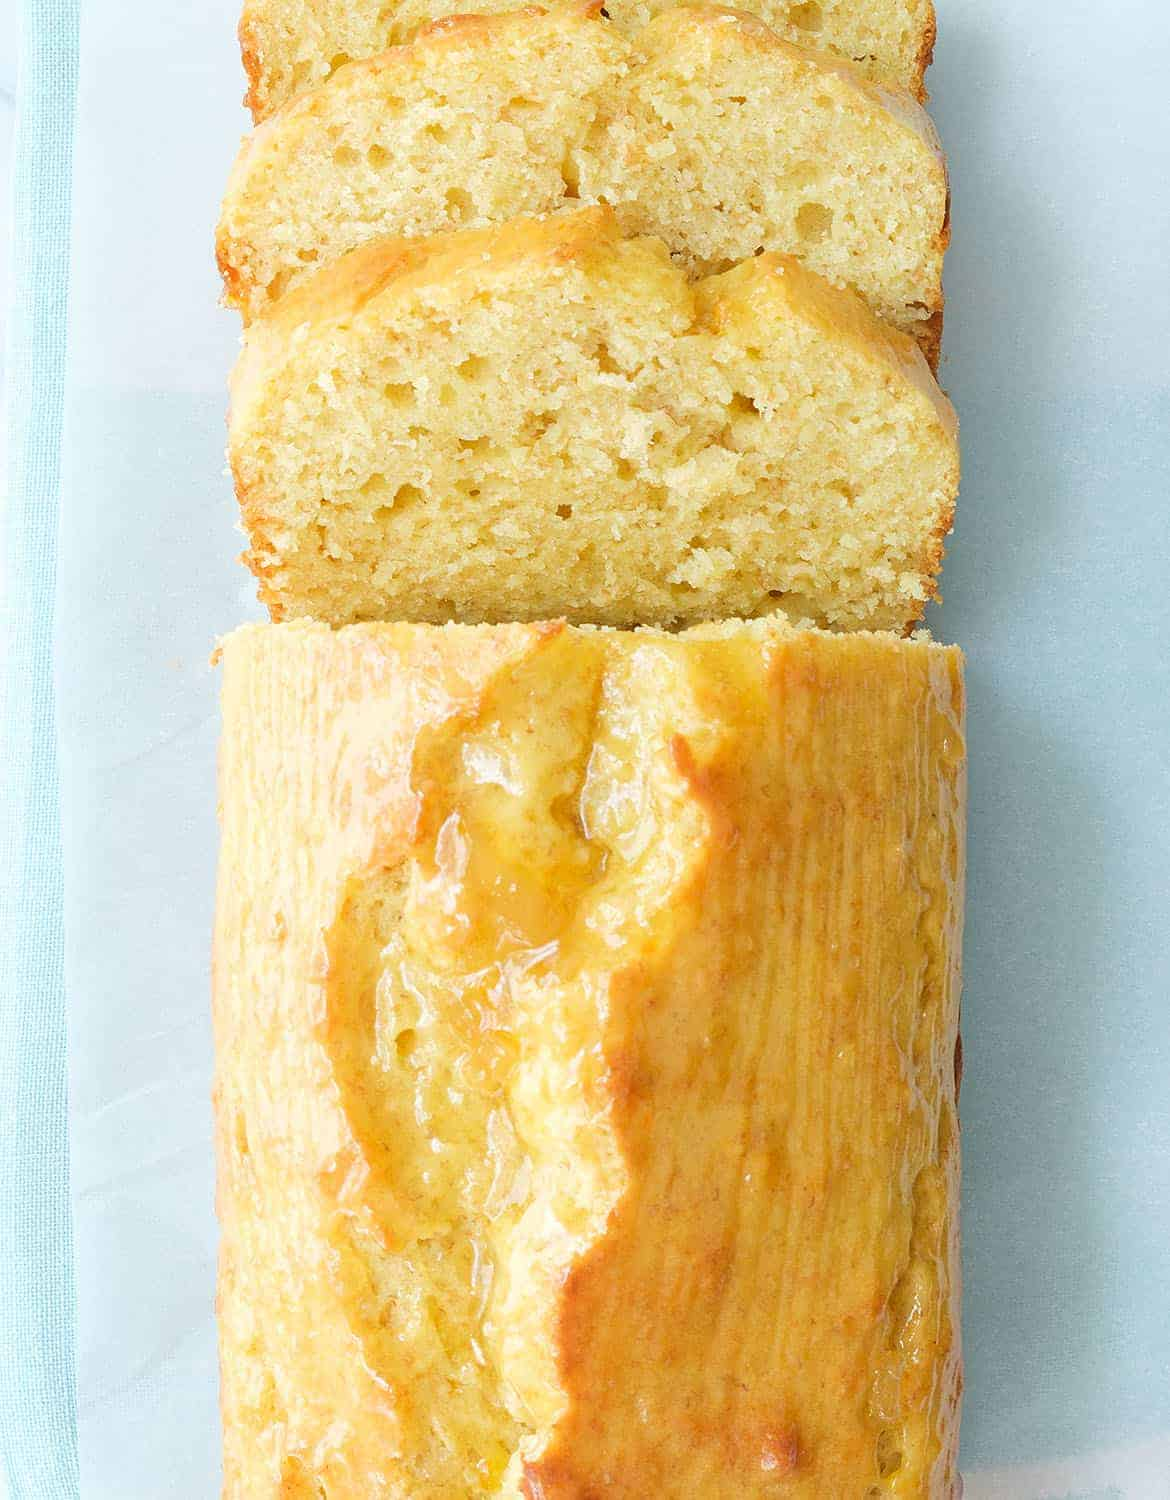 A yogurt loaf cake is cut into a few slices over a light blue background.